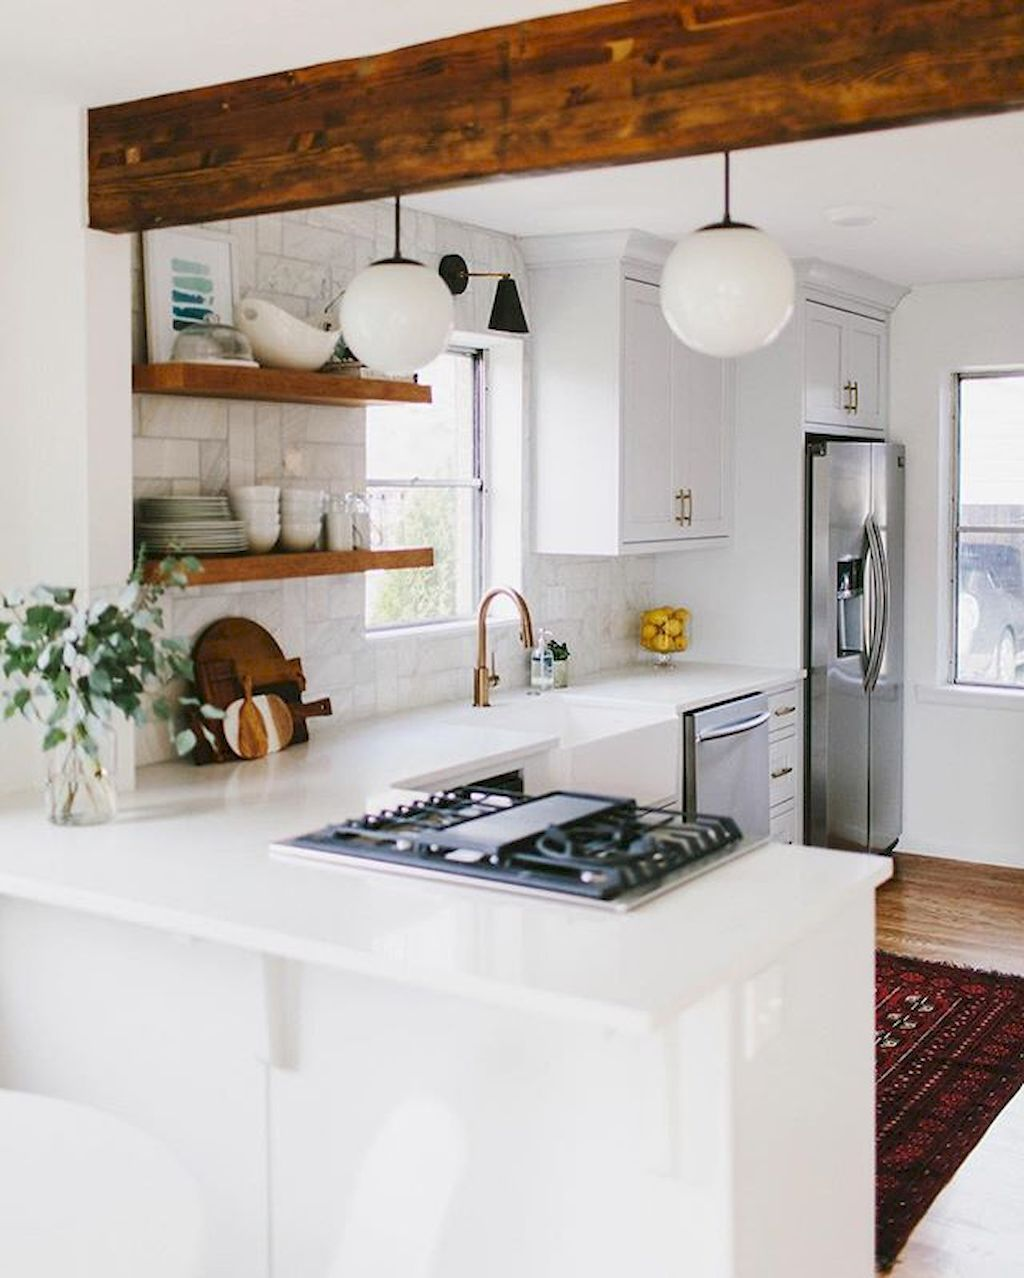 Inspiration For Small Kitchen Remodel Ideas On A Budget 75